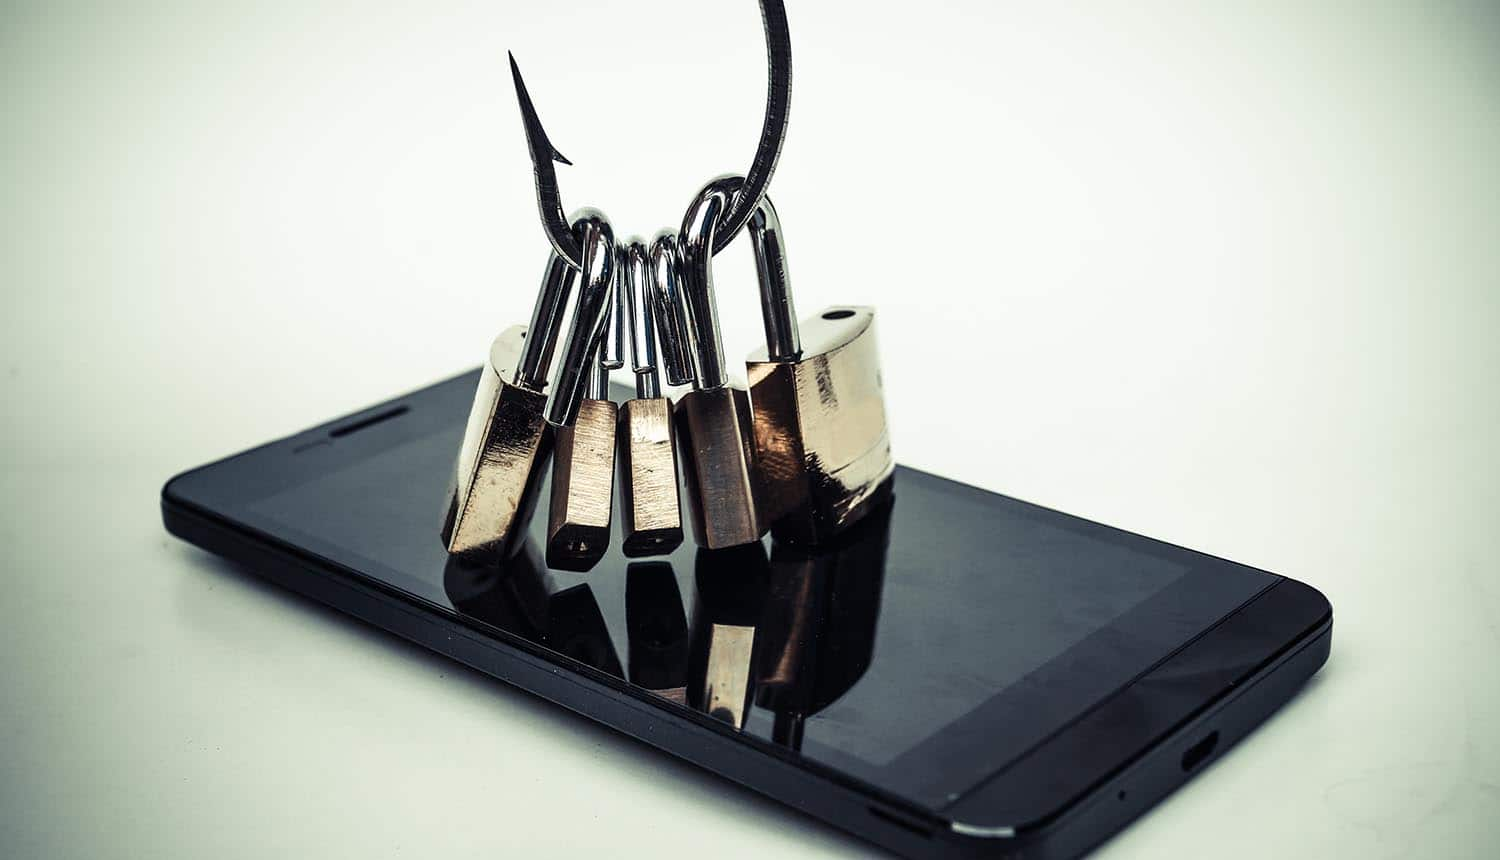 Hook with open locks on mobile phone showing the recent phishing attack on ProtonMail accounts of Bellingcat journalists was linked to Russia